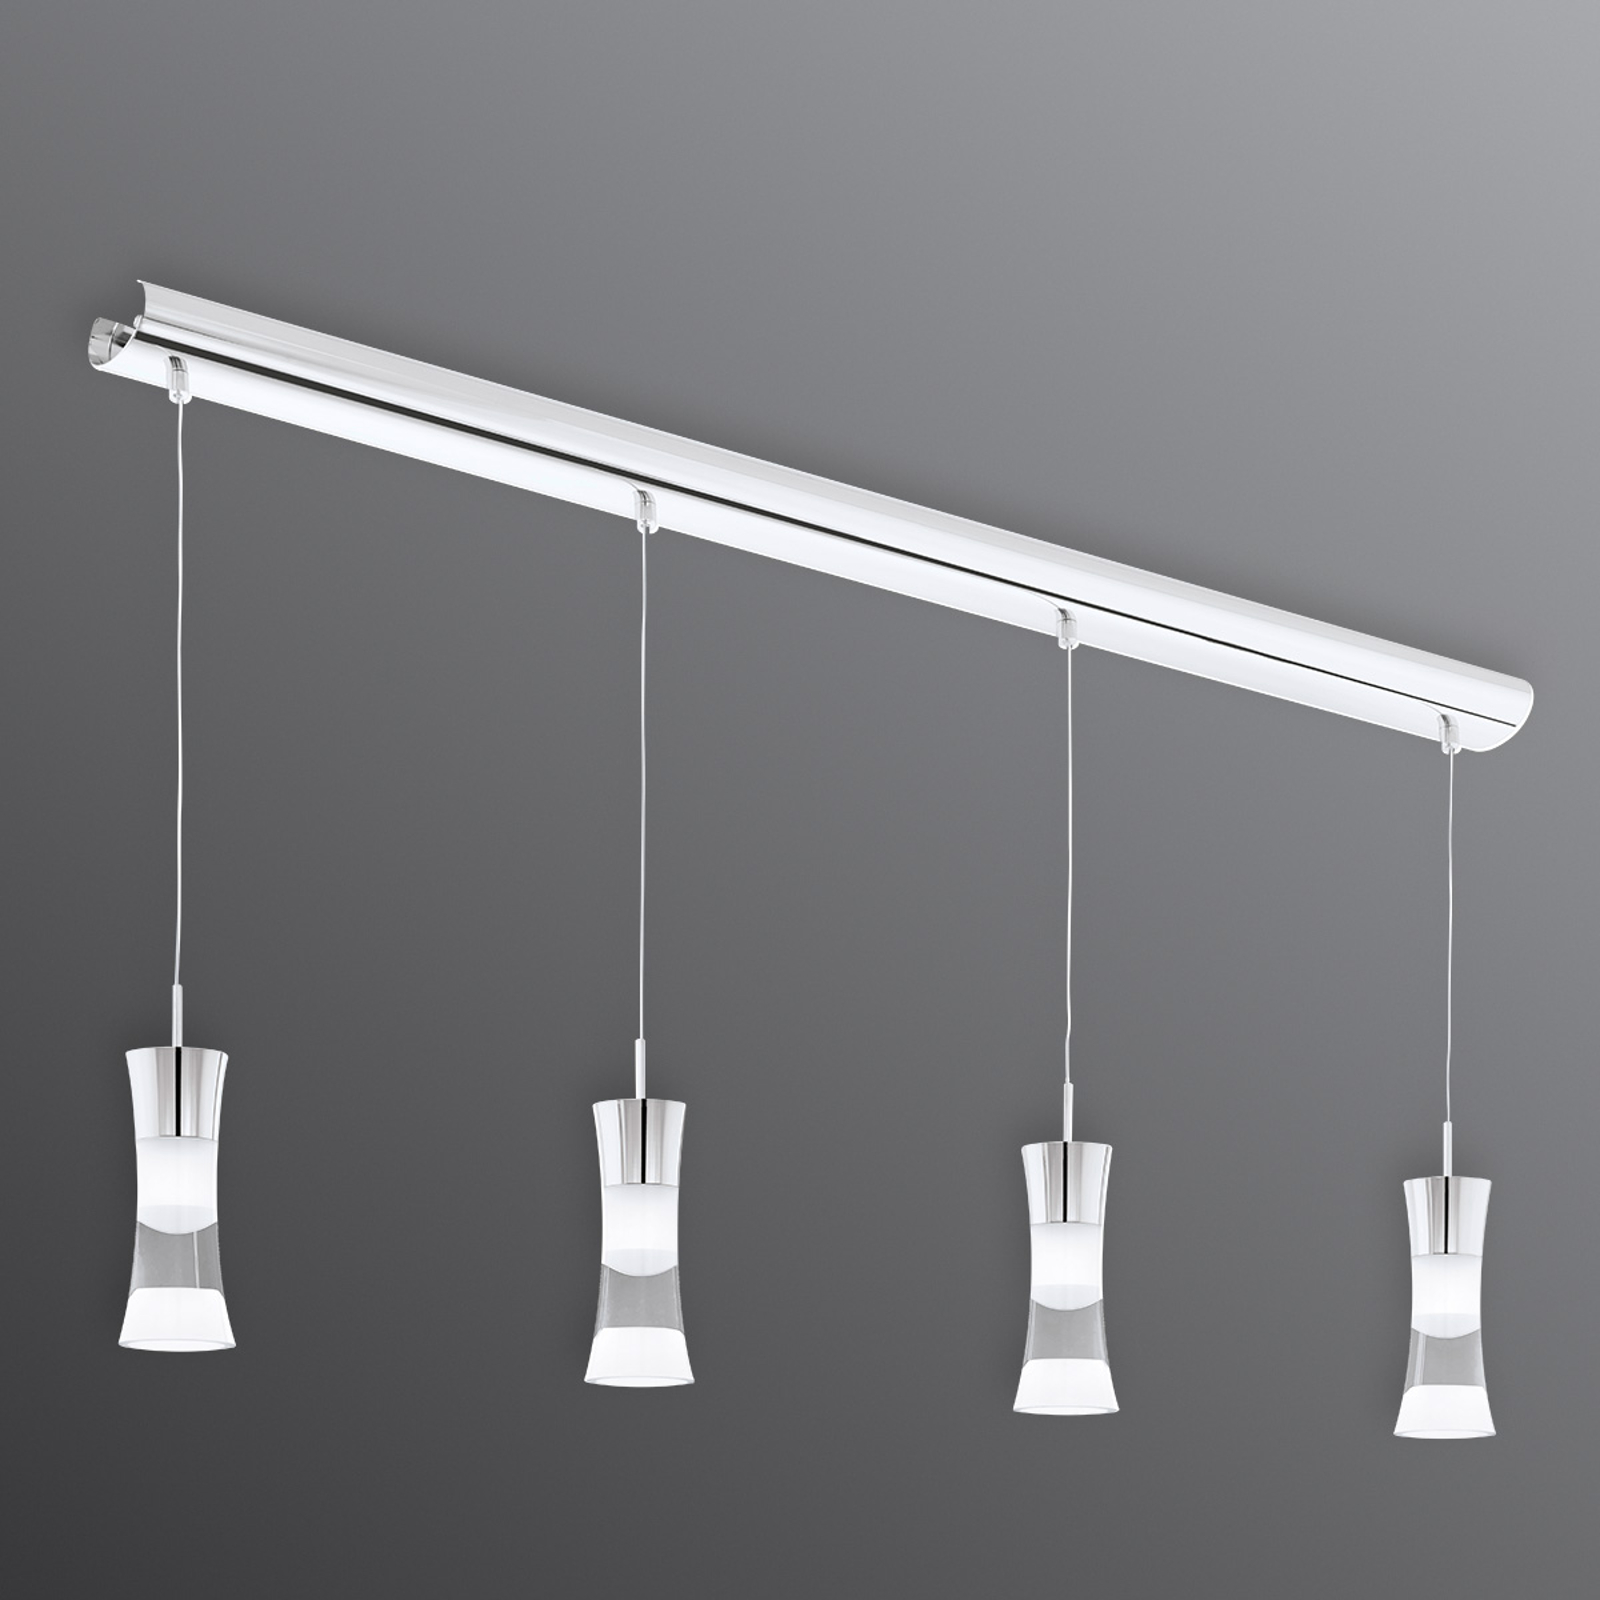 4 lichtbronnen LED hanglamp Pancento uit staal